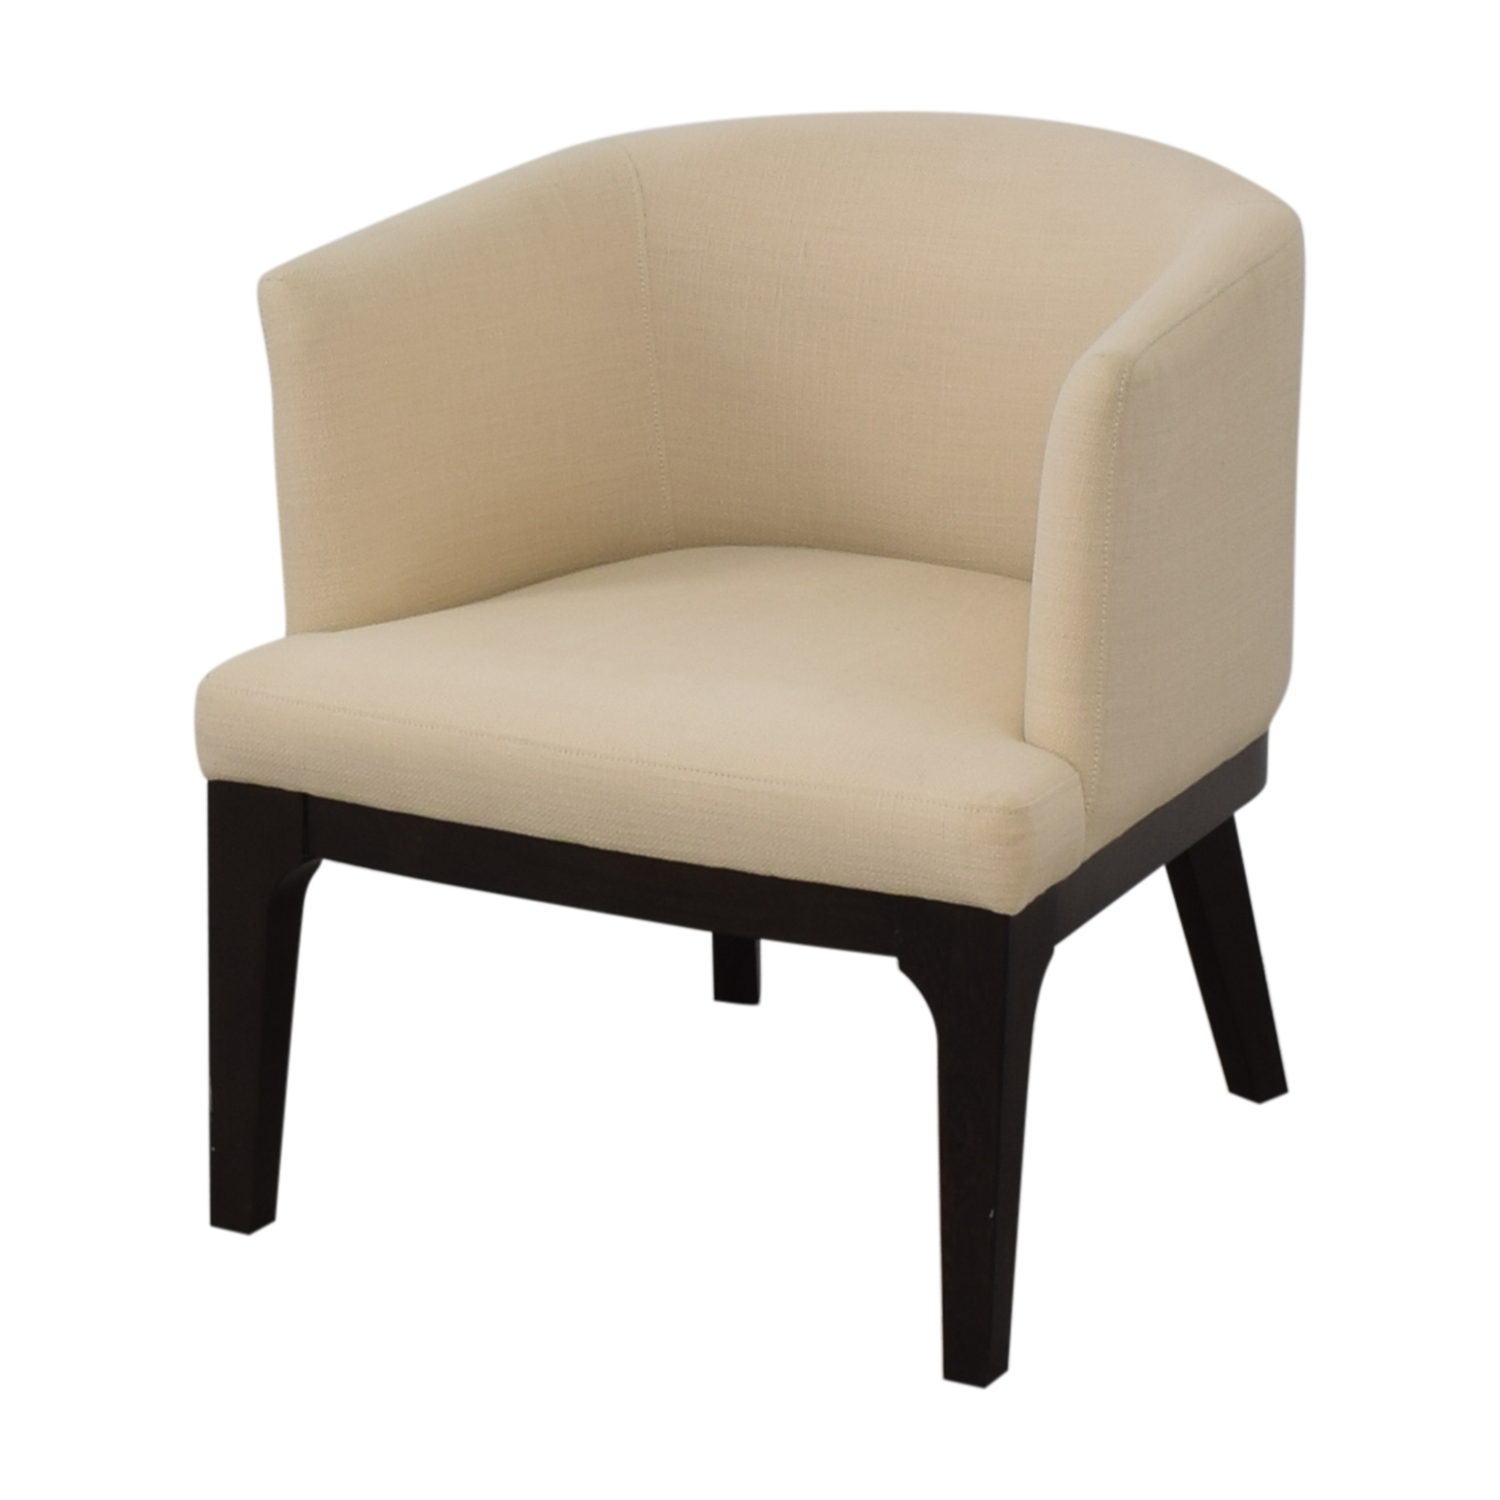 West Elm Oliver Chair sale